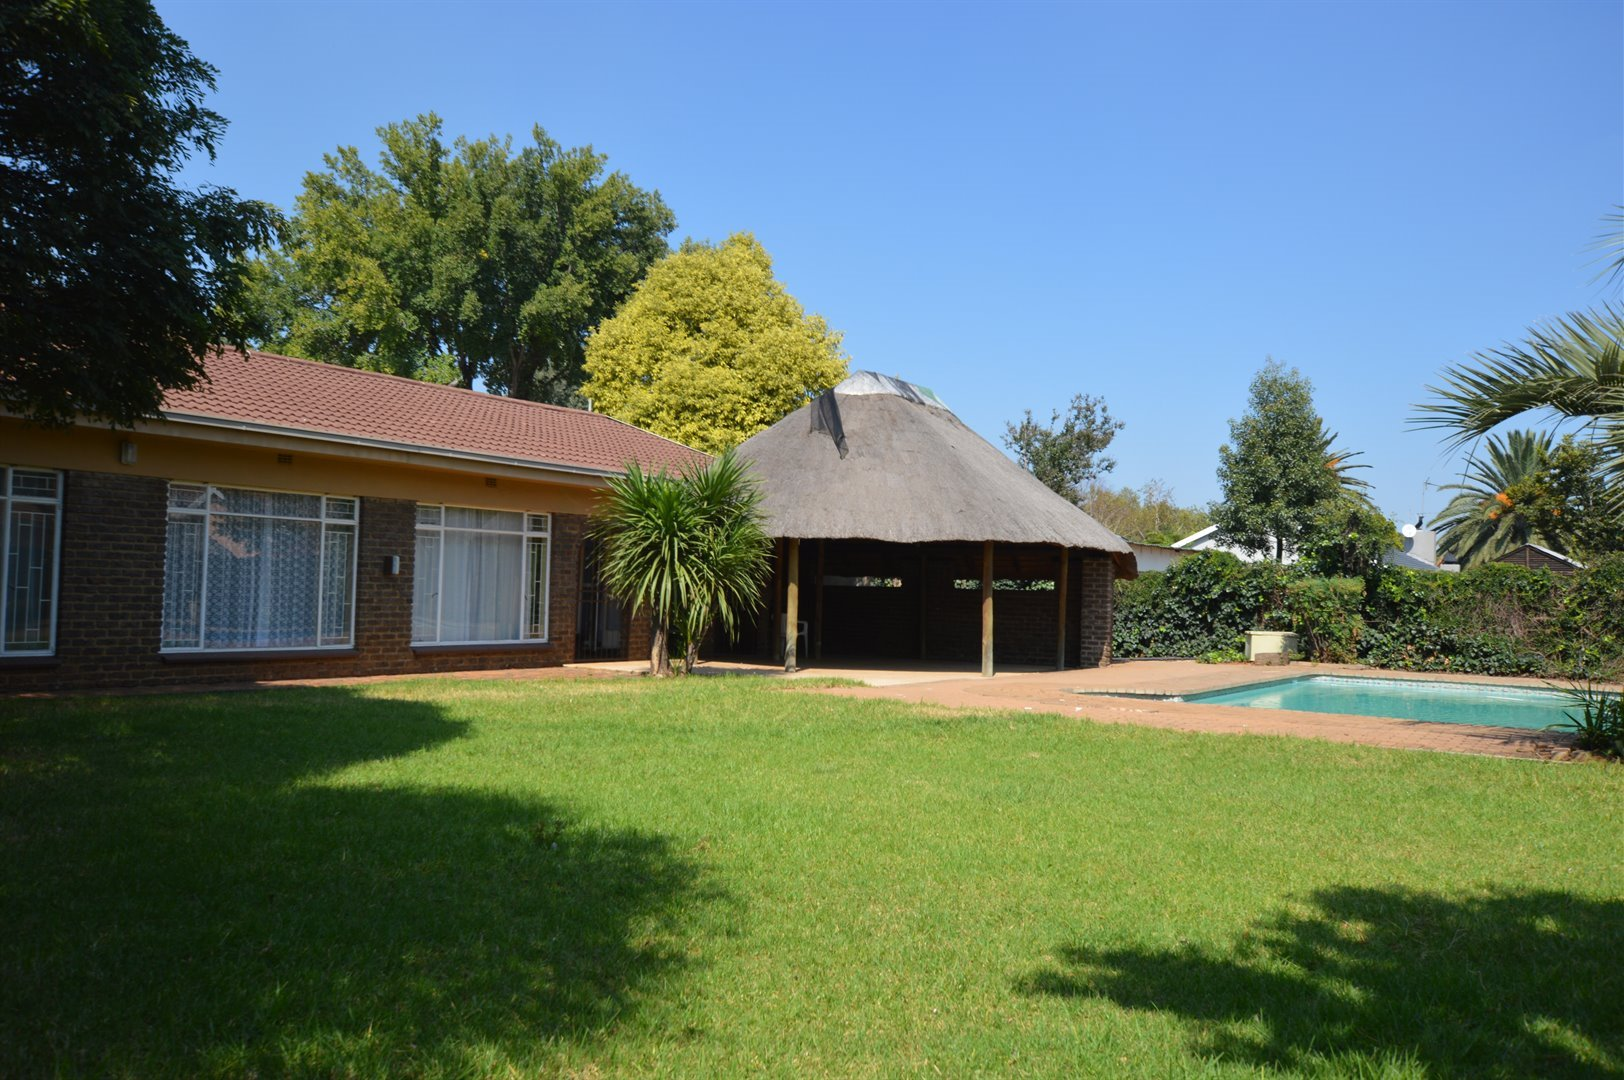 Vanderbijlpark Se 2 for sale property. Ref No: 13623209. Picture no 31